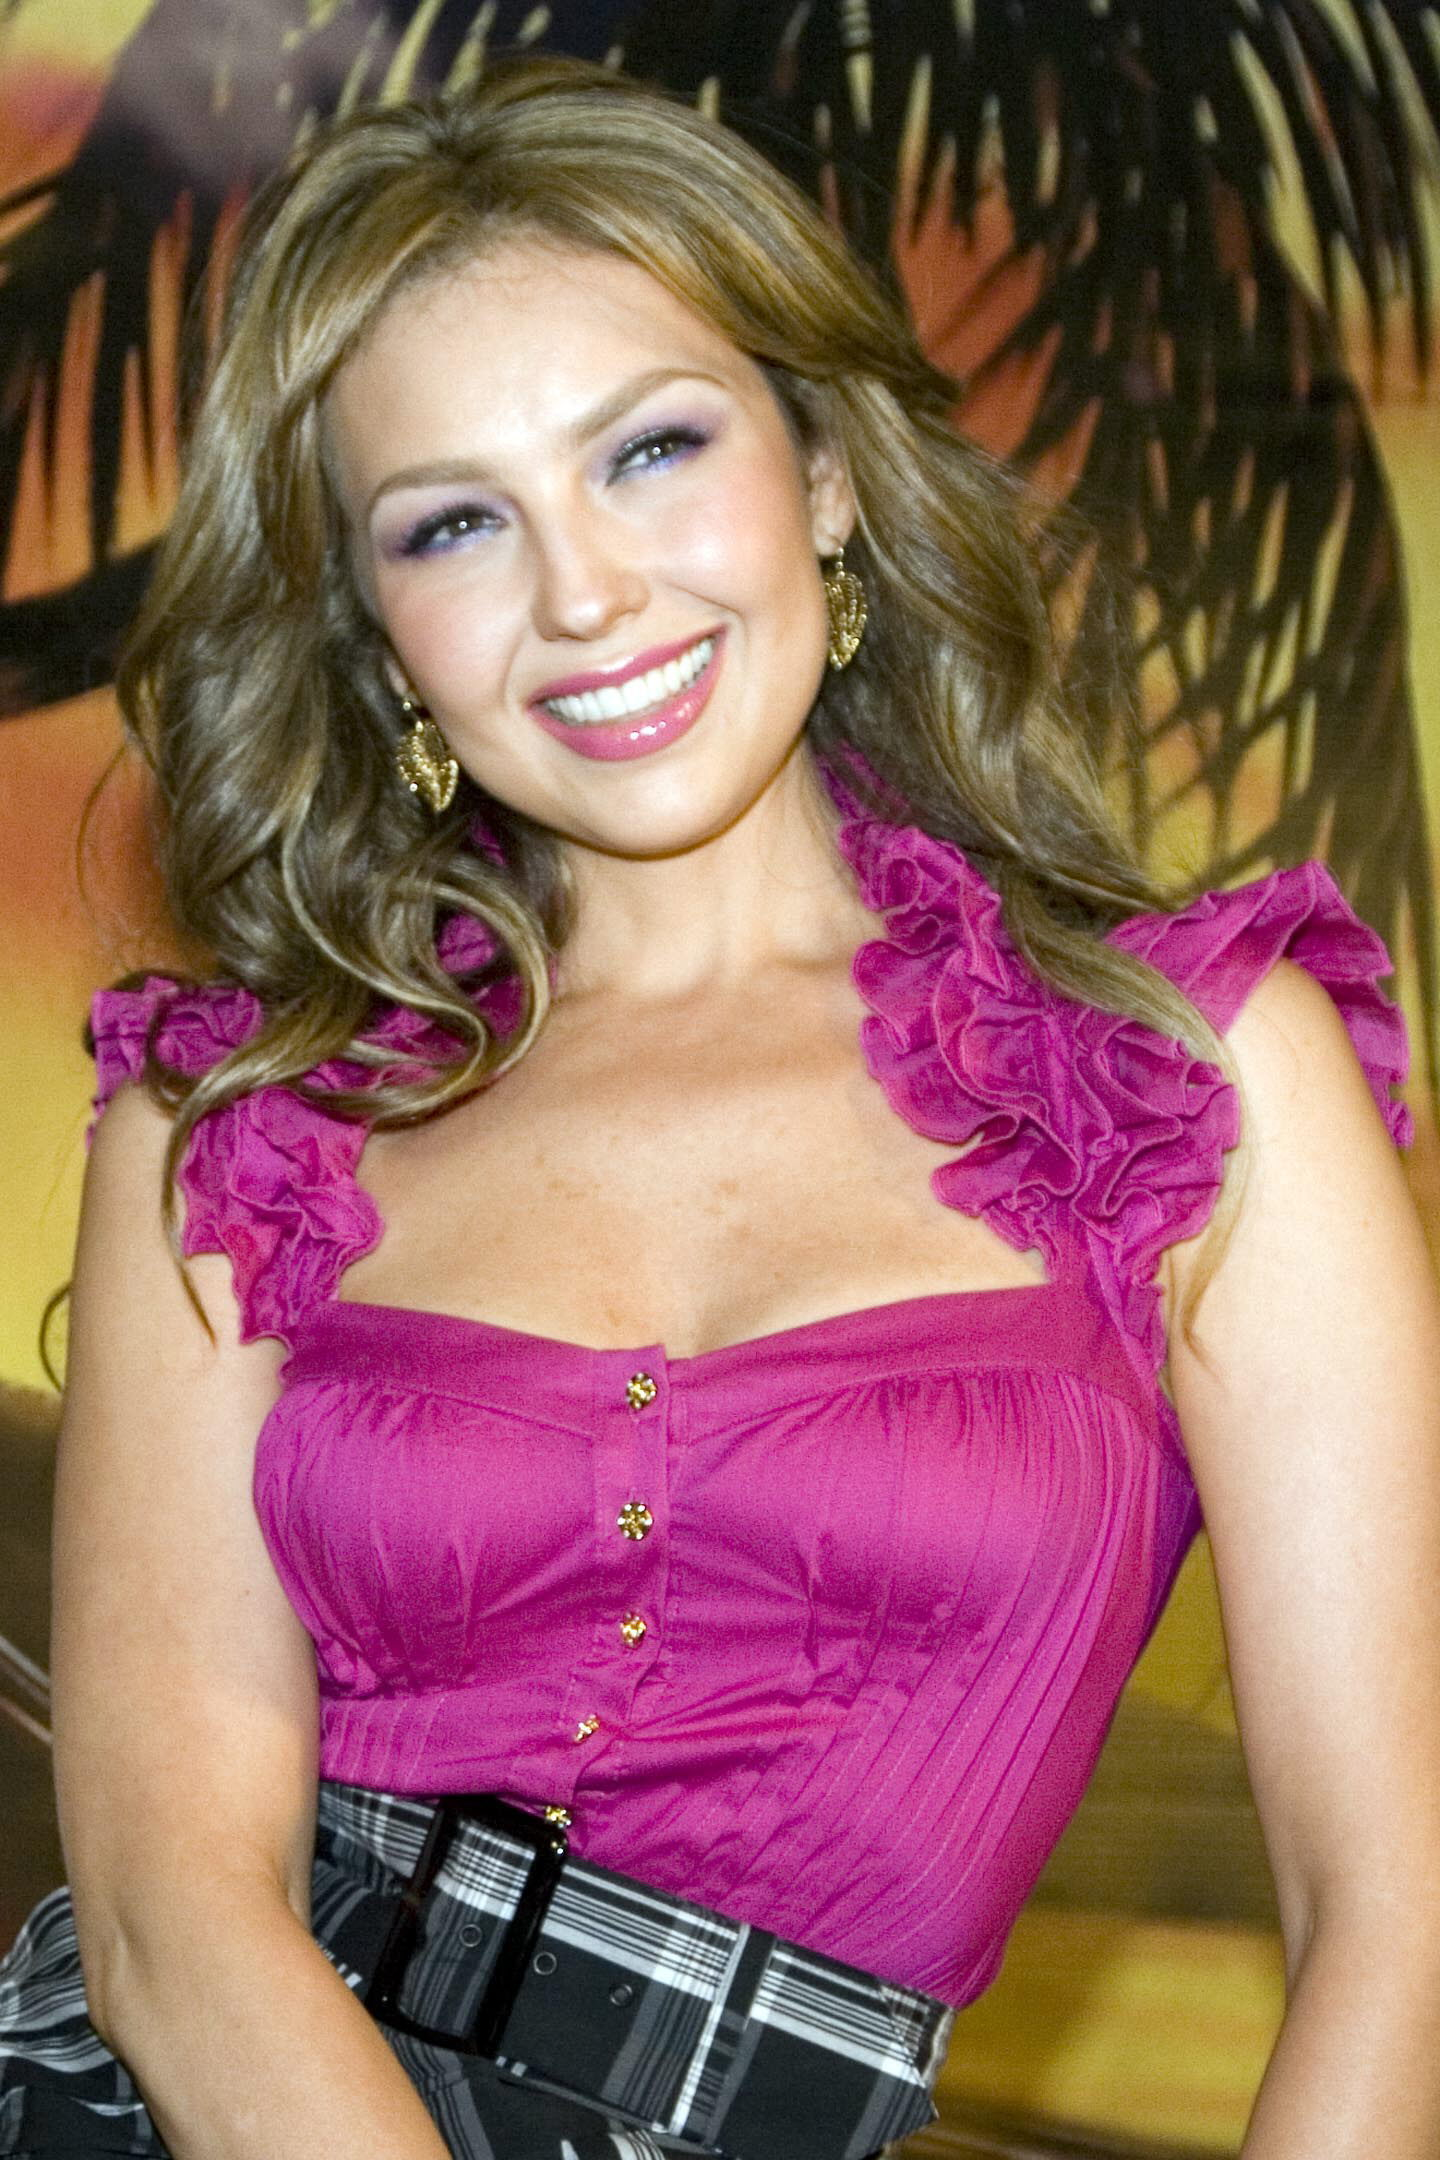 https://i0.wp.com/images2.fanpop.com/images/photos/6700000/Thalia-thalia-6708947-1440-2160.jpg